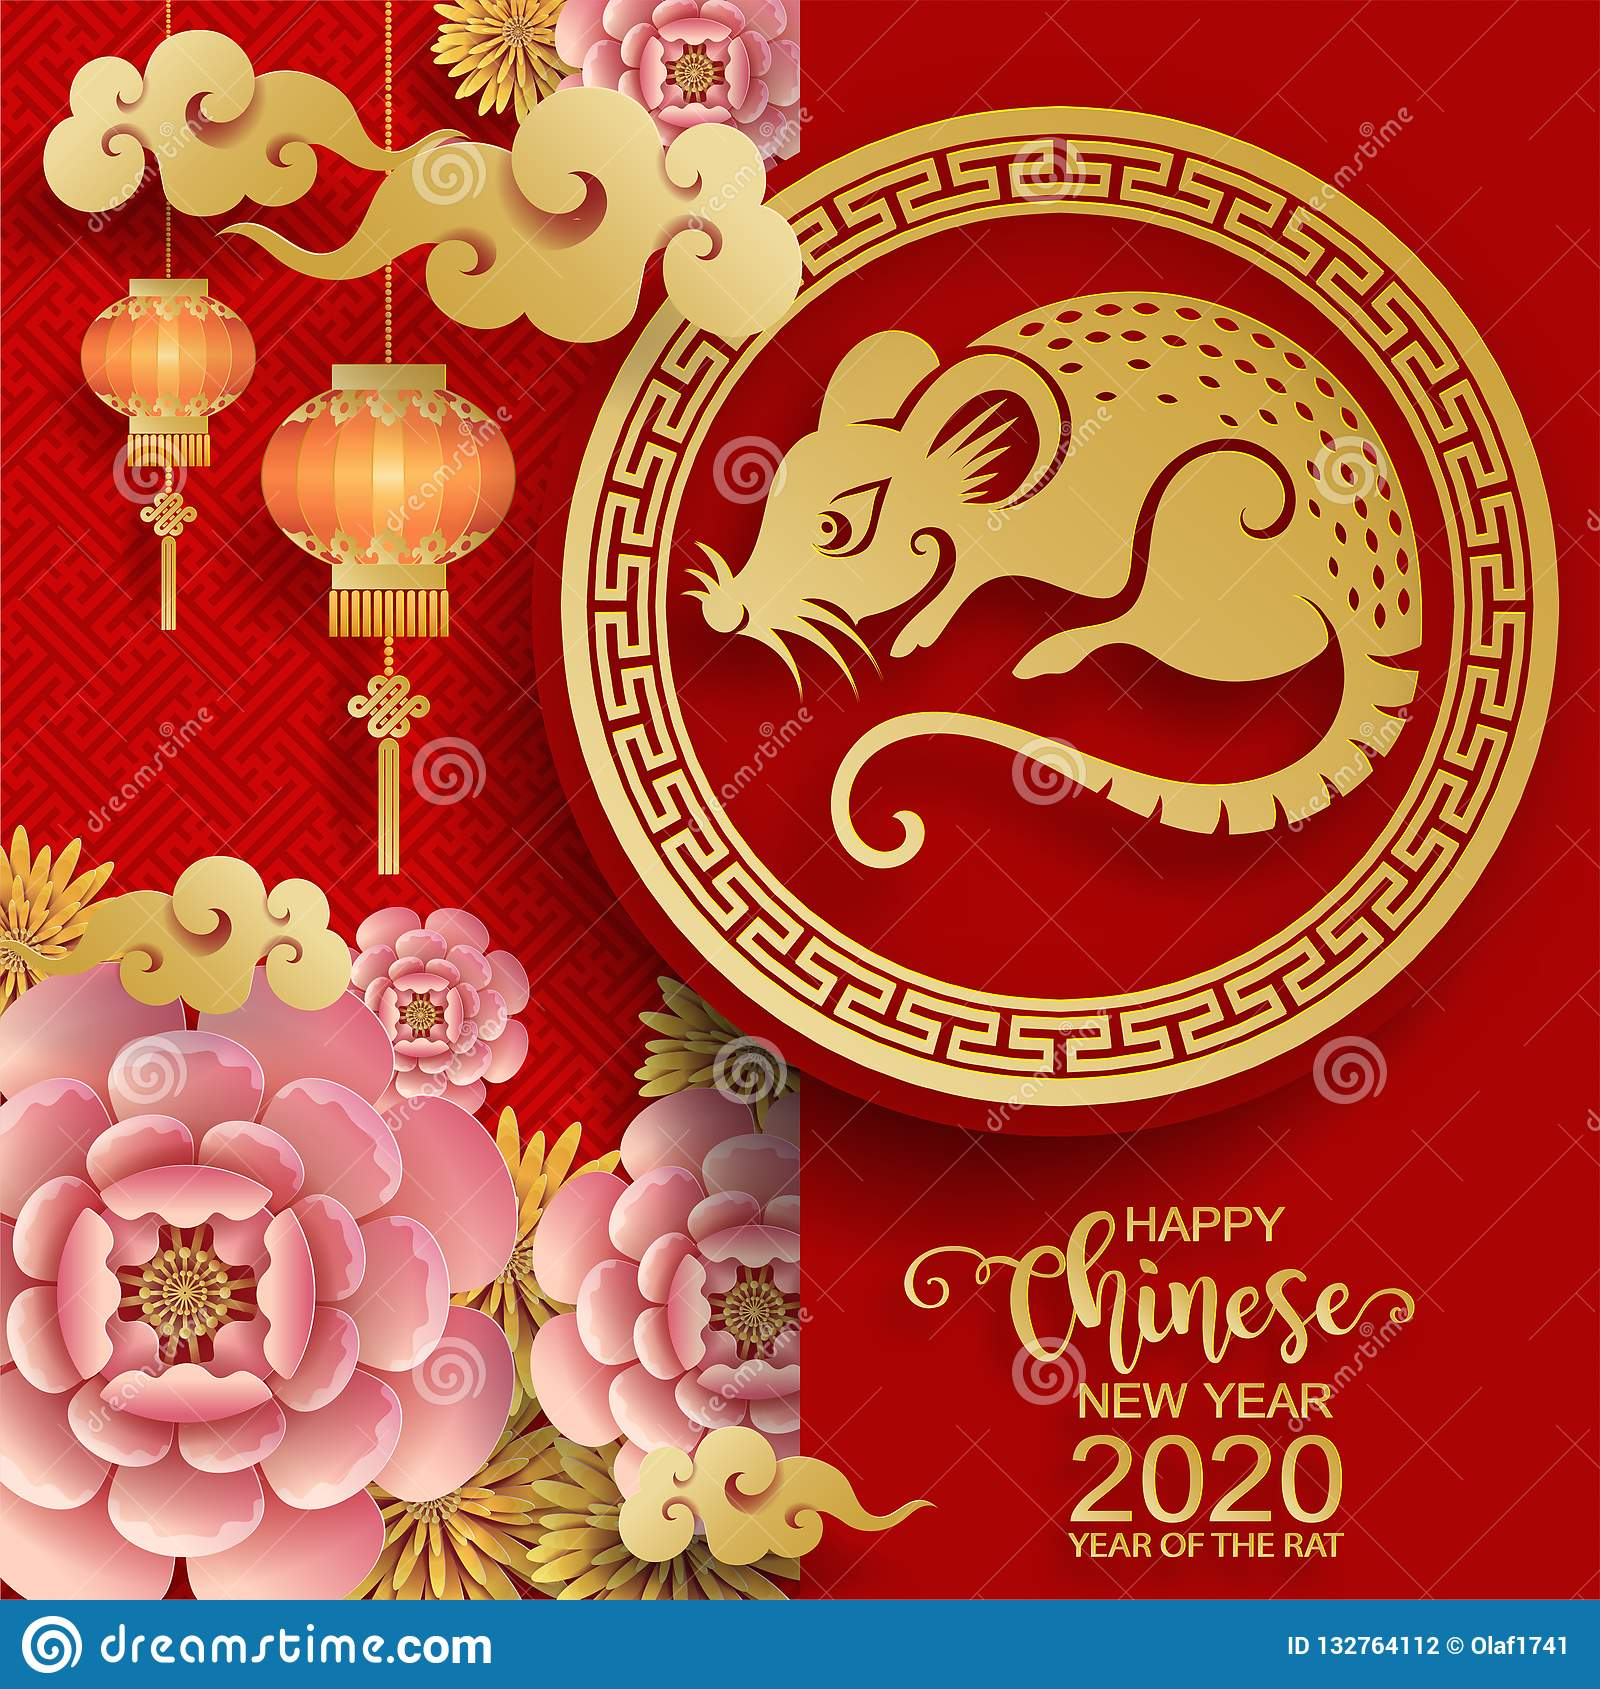 Happy Chinese New Year 2020 Stock Vector - Illustration of ...